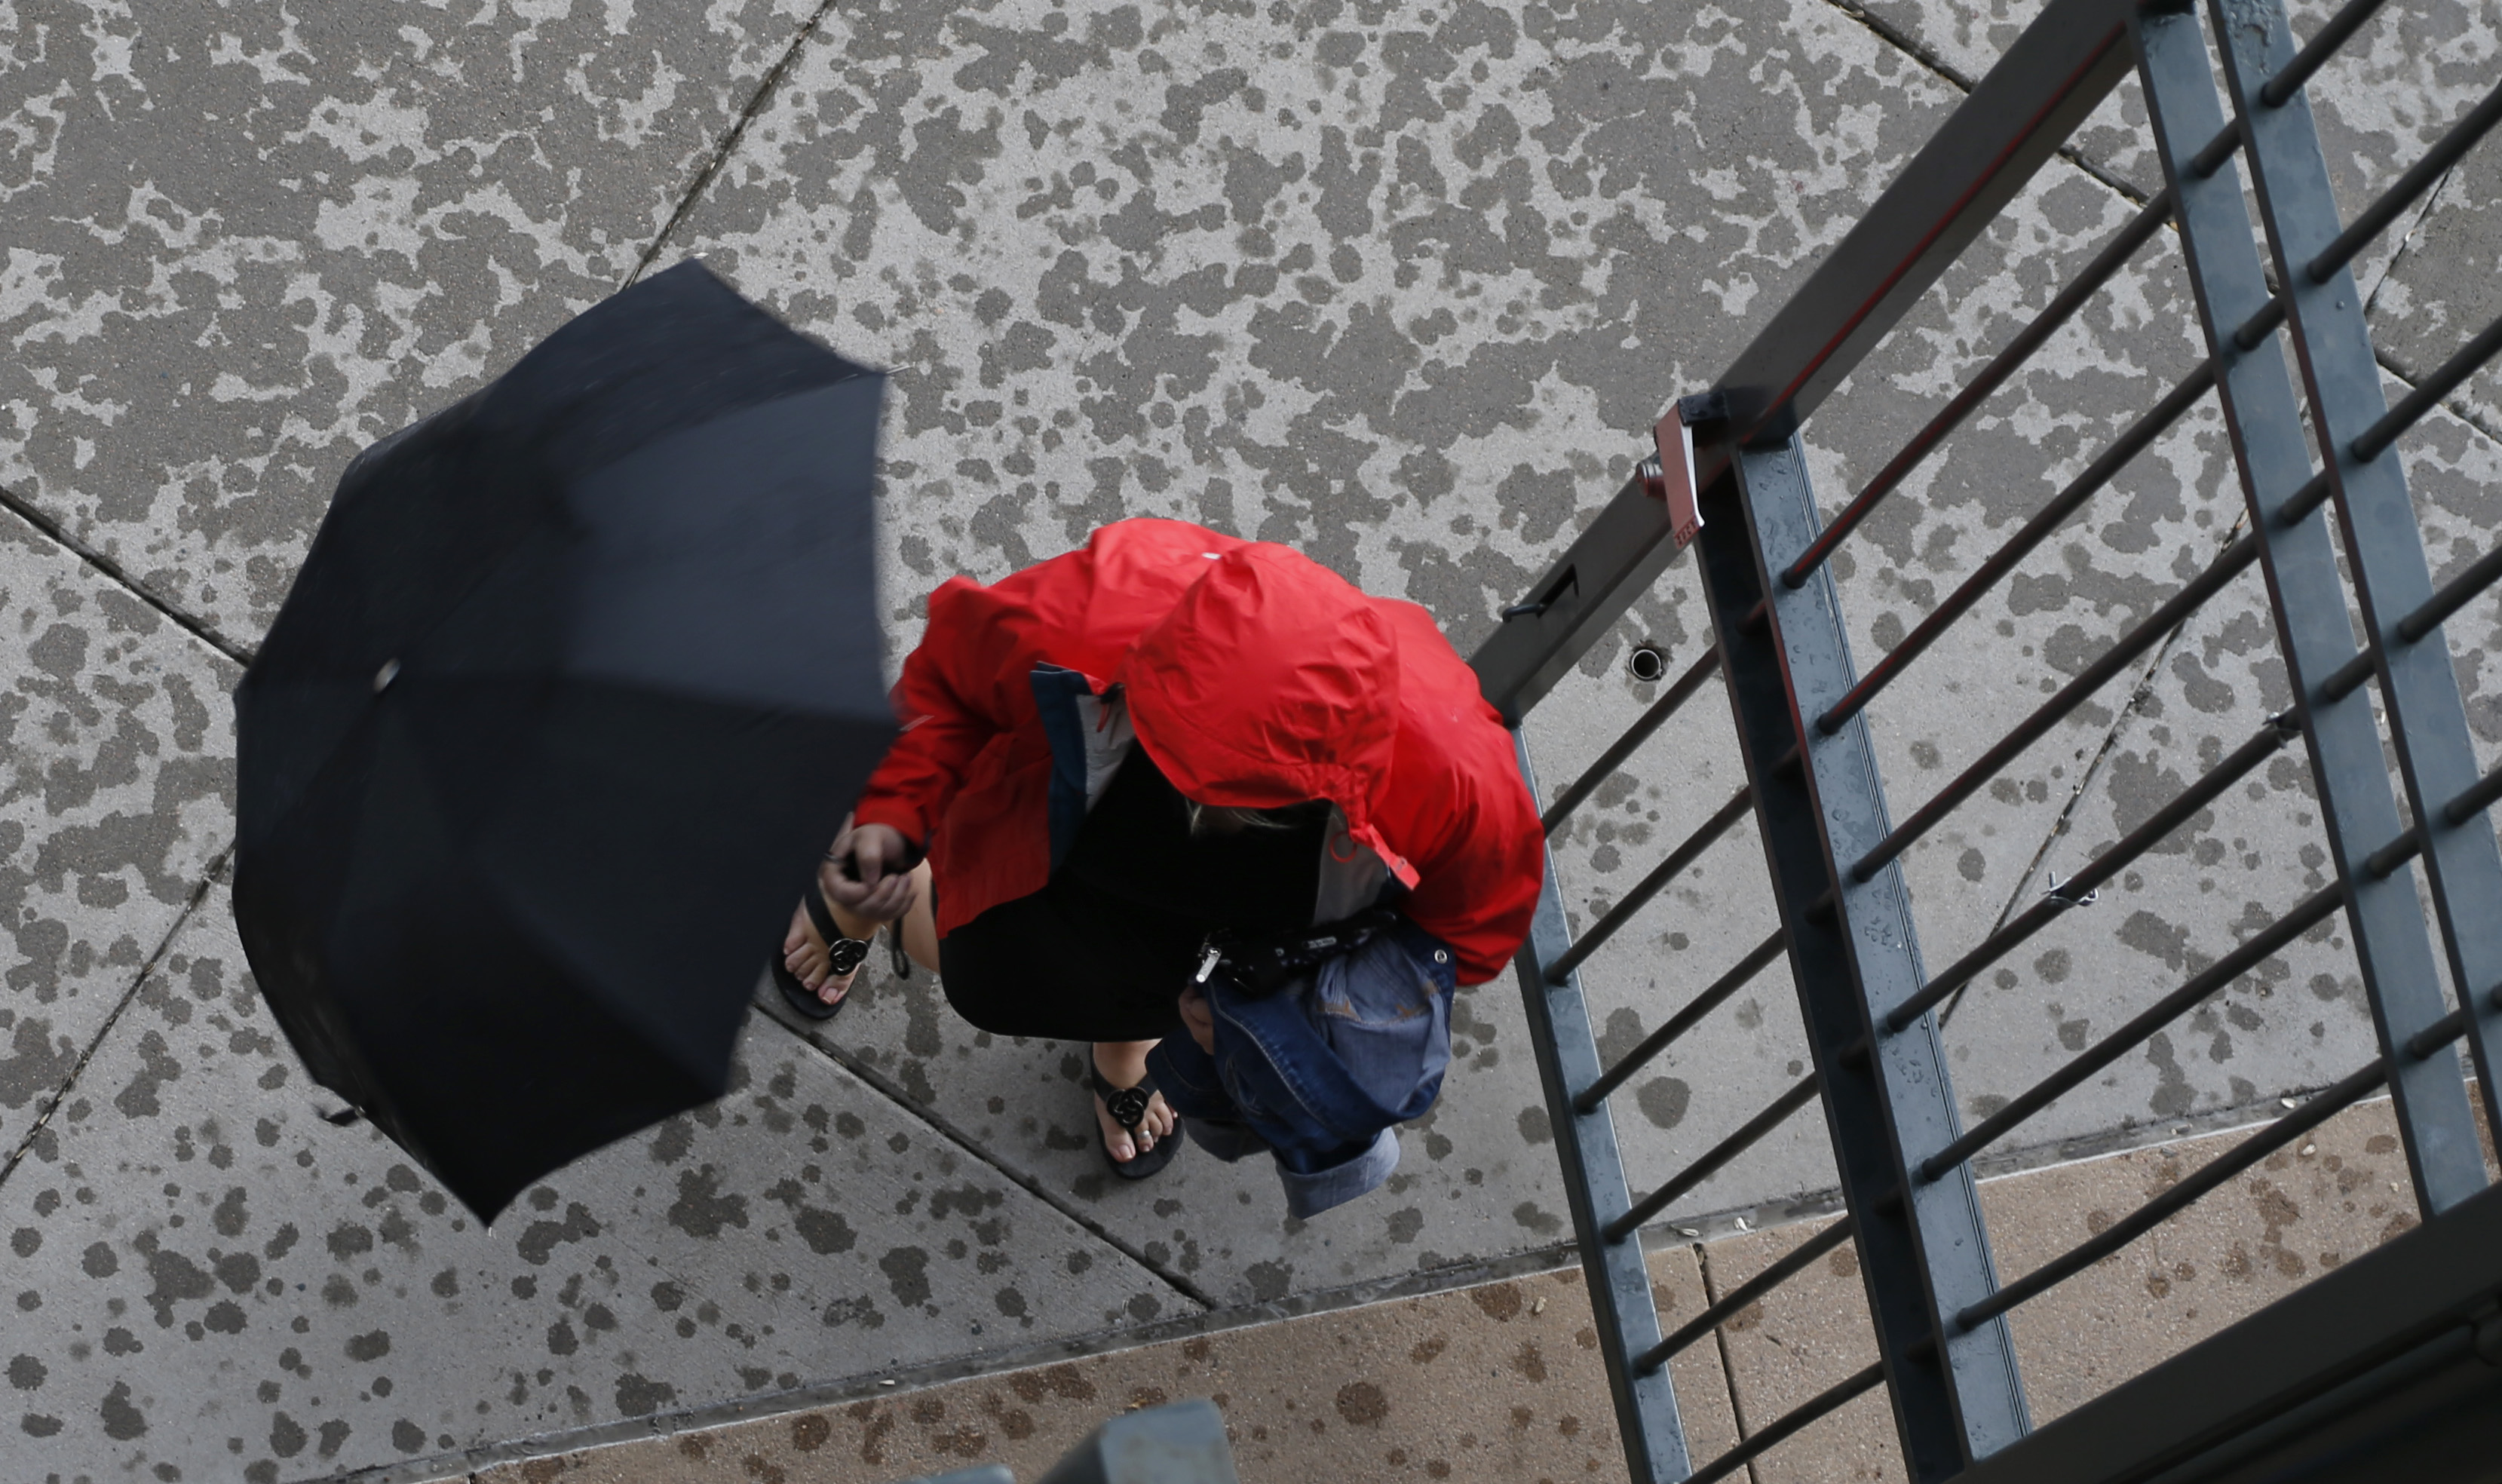 An unidentified pedestrian pulls down an umbrella to enter a building as rain falls from a storm sweeping over downtown Denver late Wednesday, June 3, 2015.